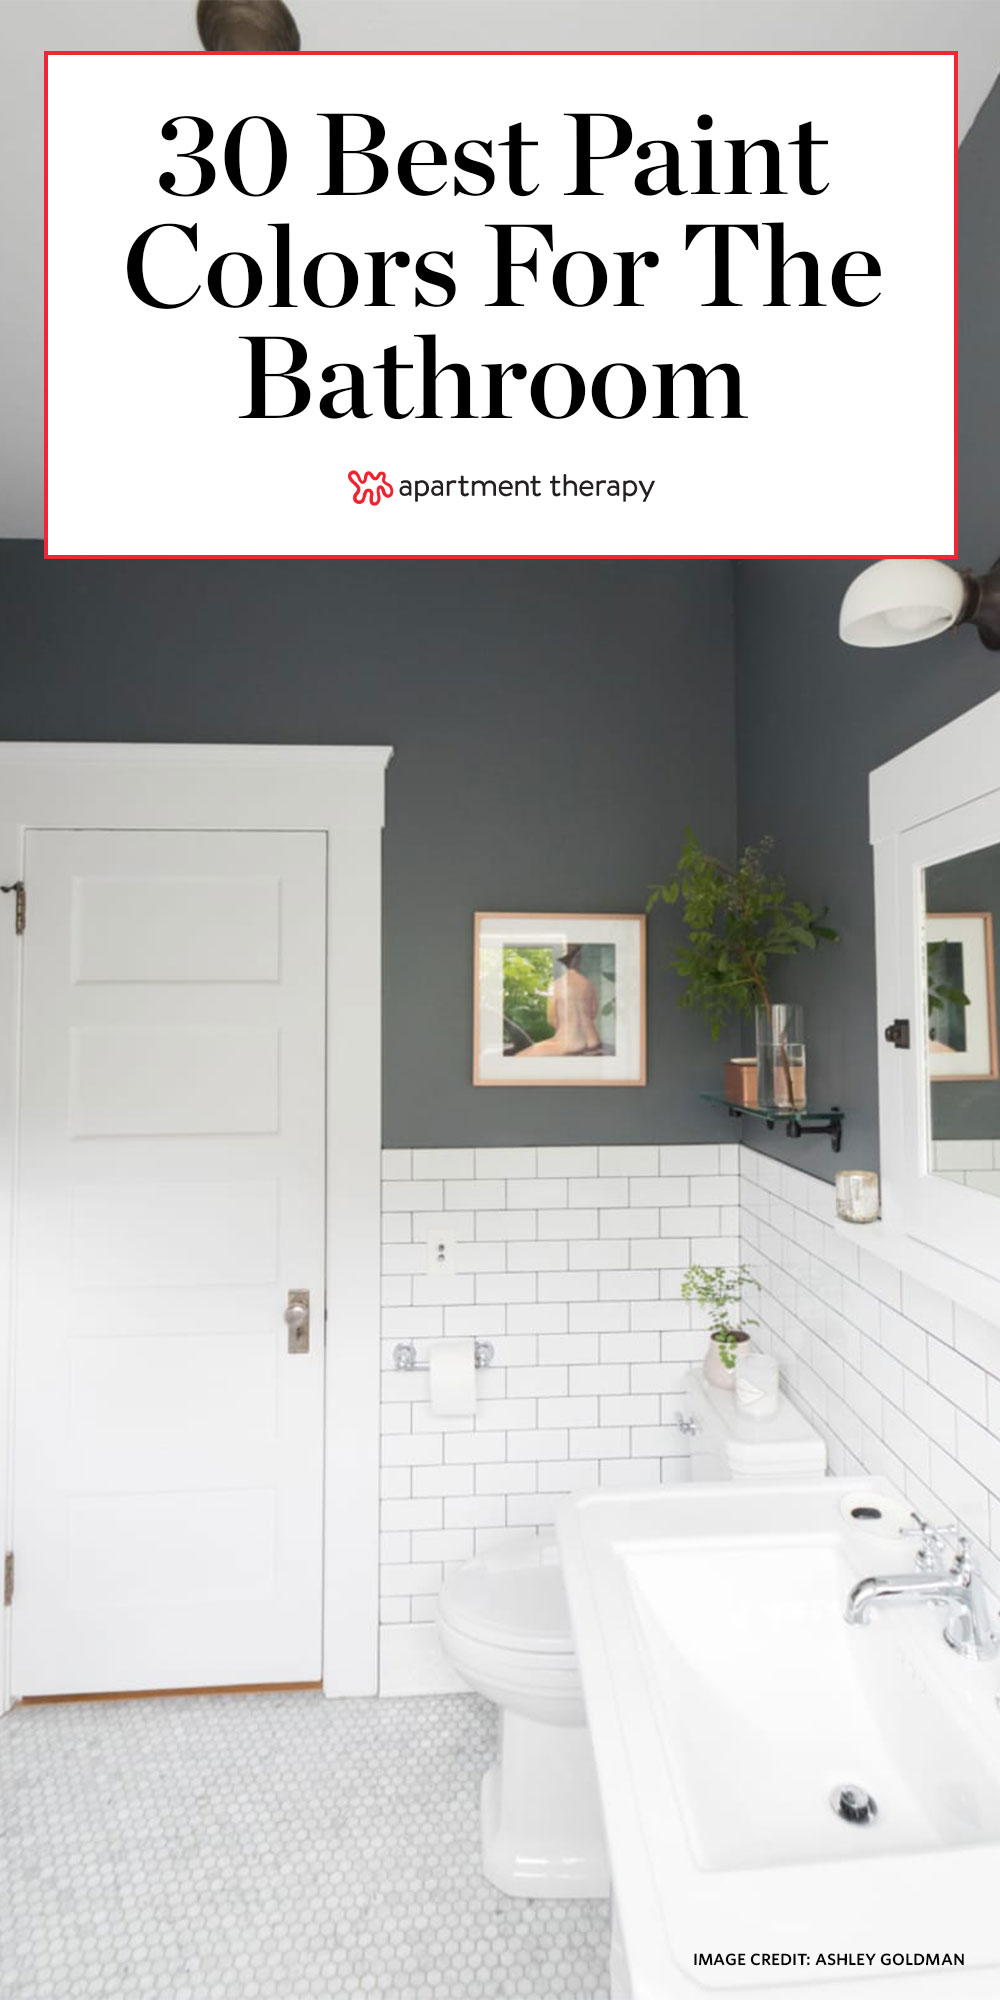 The 30 Best Bathroom Colors Bathroom Paint Color Ideas Apartment Therapy,7 Quick And Easy Kitchen Cleaning Ideas That Really Work